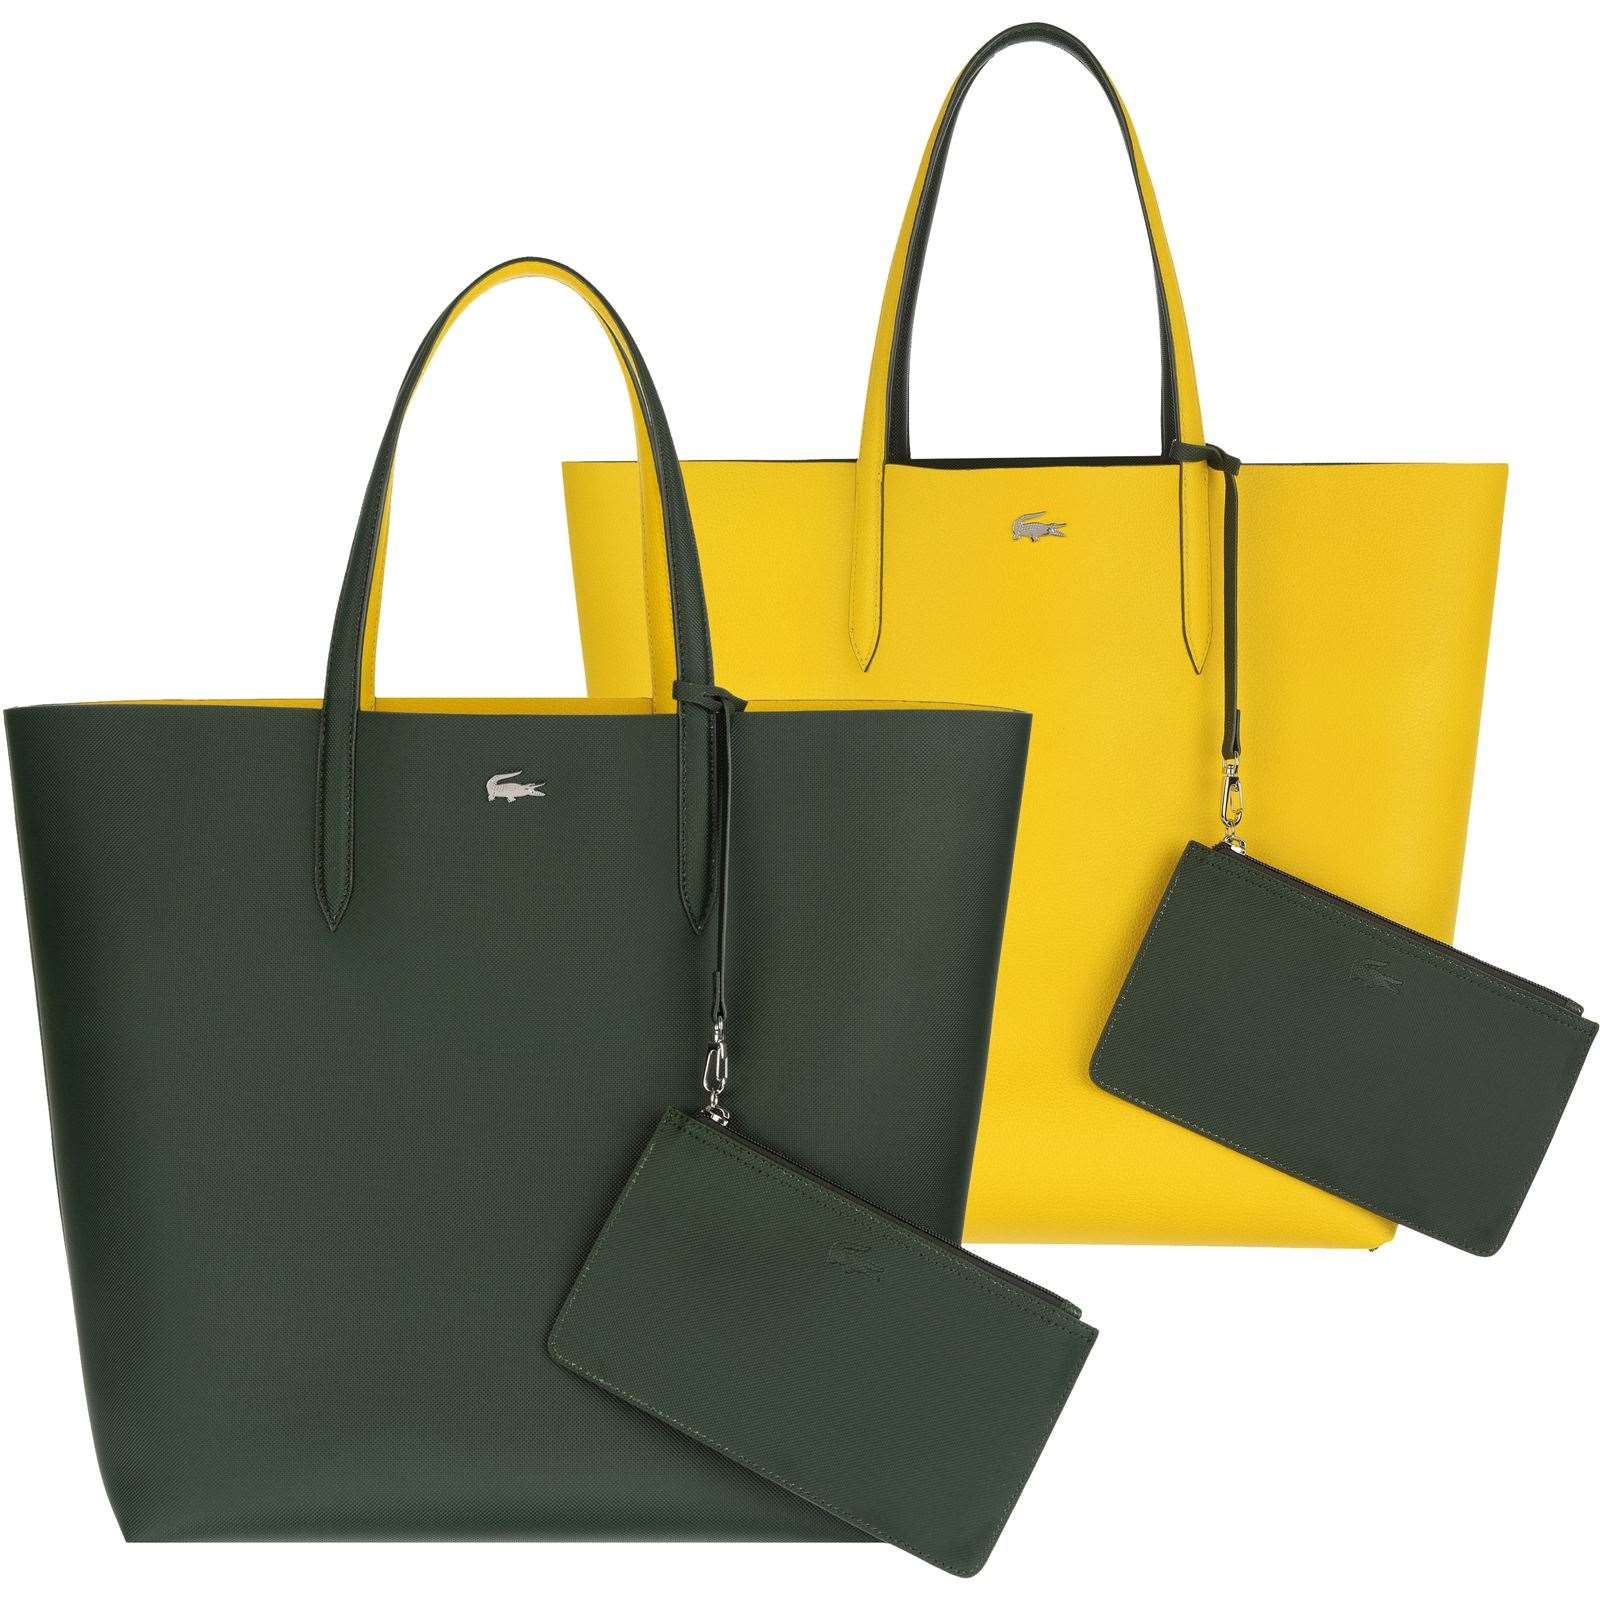 lacoste anna sac cabas r versible avec pochette bicolore brandalley. Black Bedroom Furniture Sets. Home Design Ideas